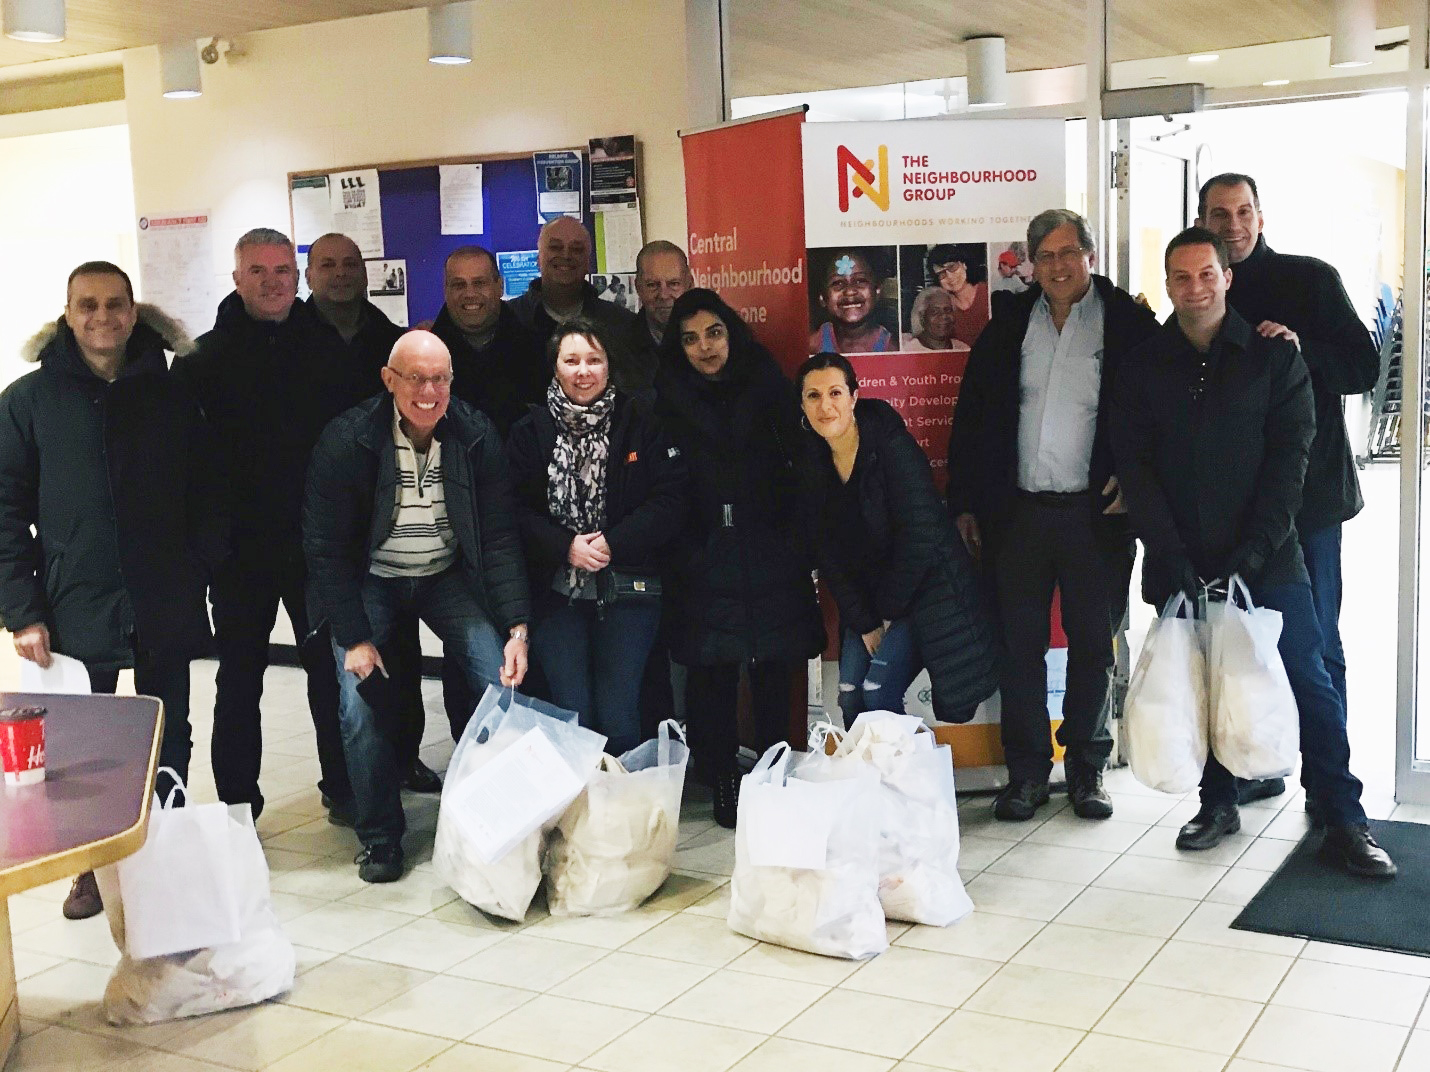 Canadian Leadership team volunteering with the organization The Neighbourhood Group with their annual December Friendly Holiday Gift Giving Program.